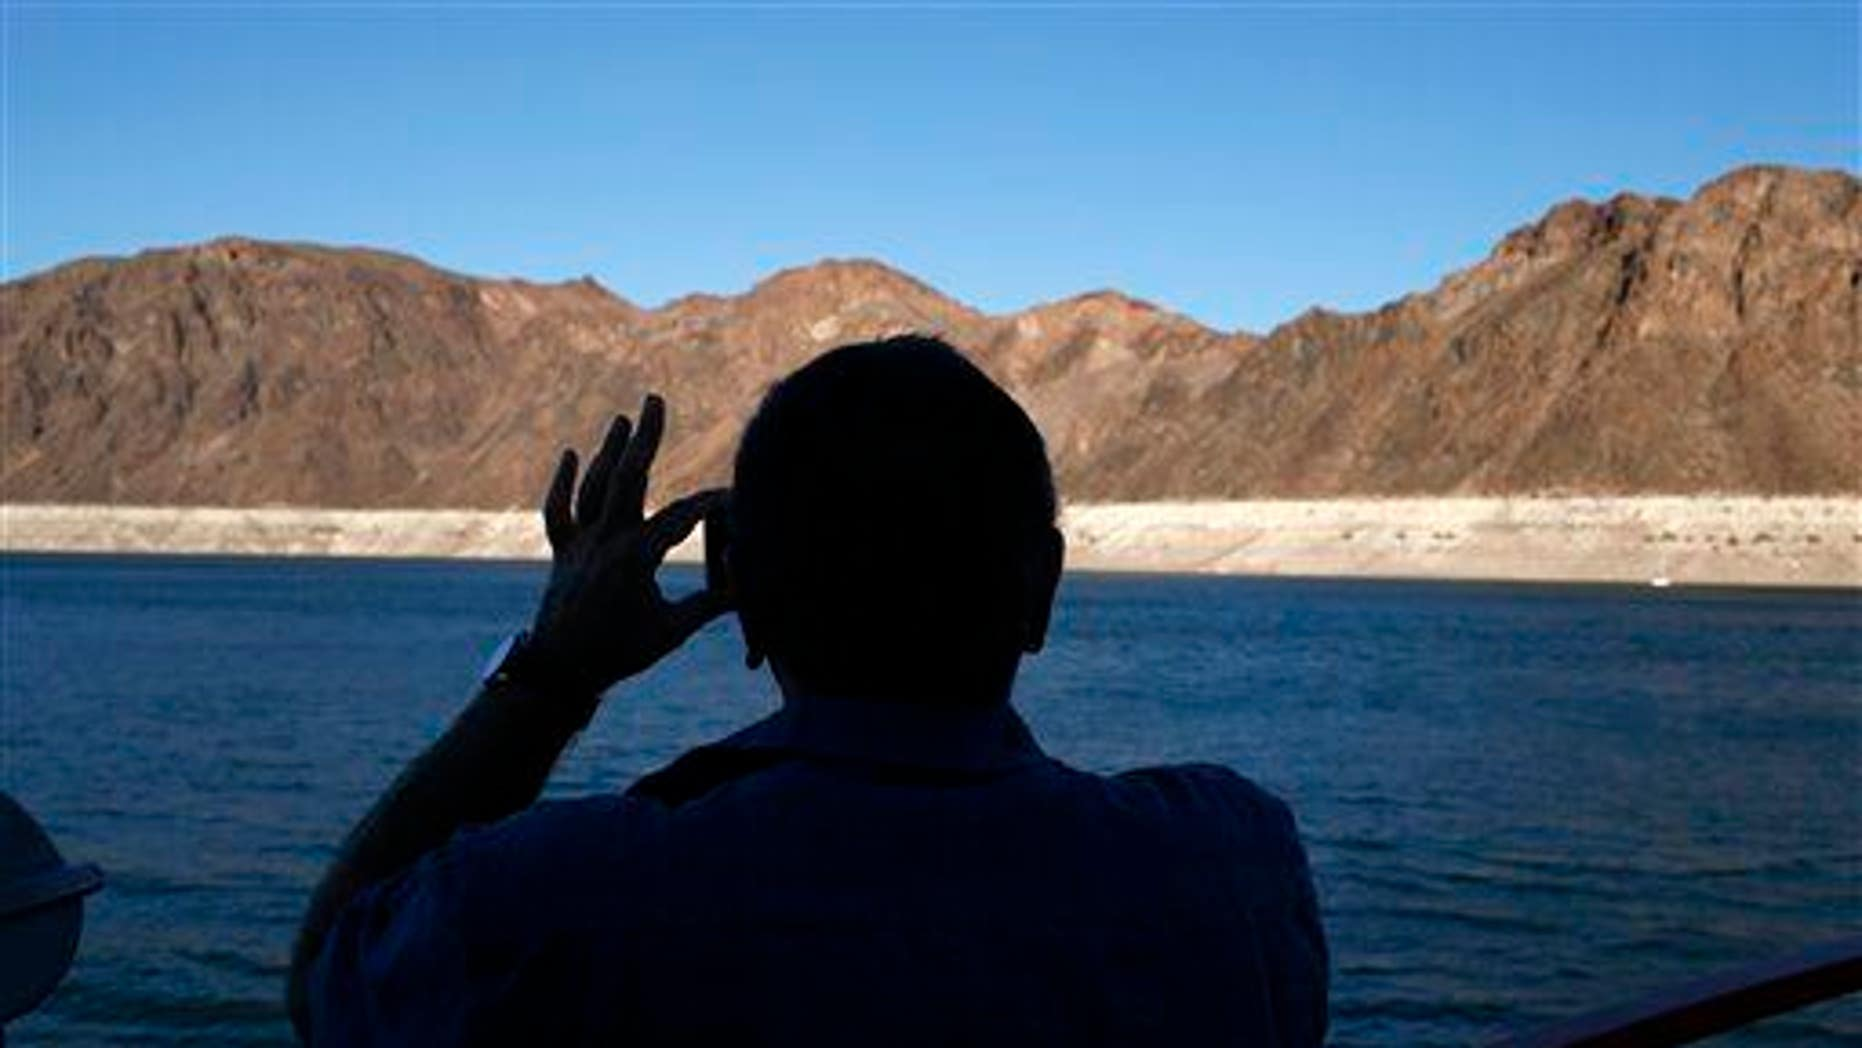 In this July 20, 2014 photo, a man takes a picture while taking a cruise at the Lake Mead National Recreation Area in Nevada.